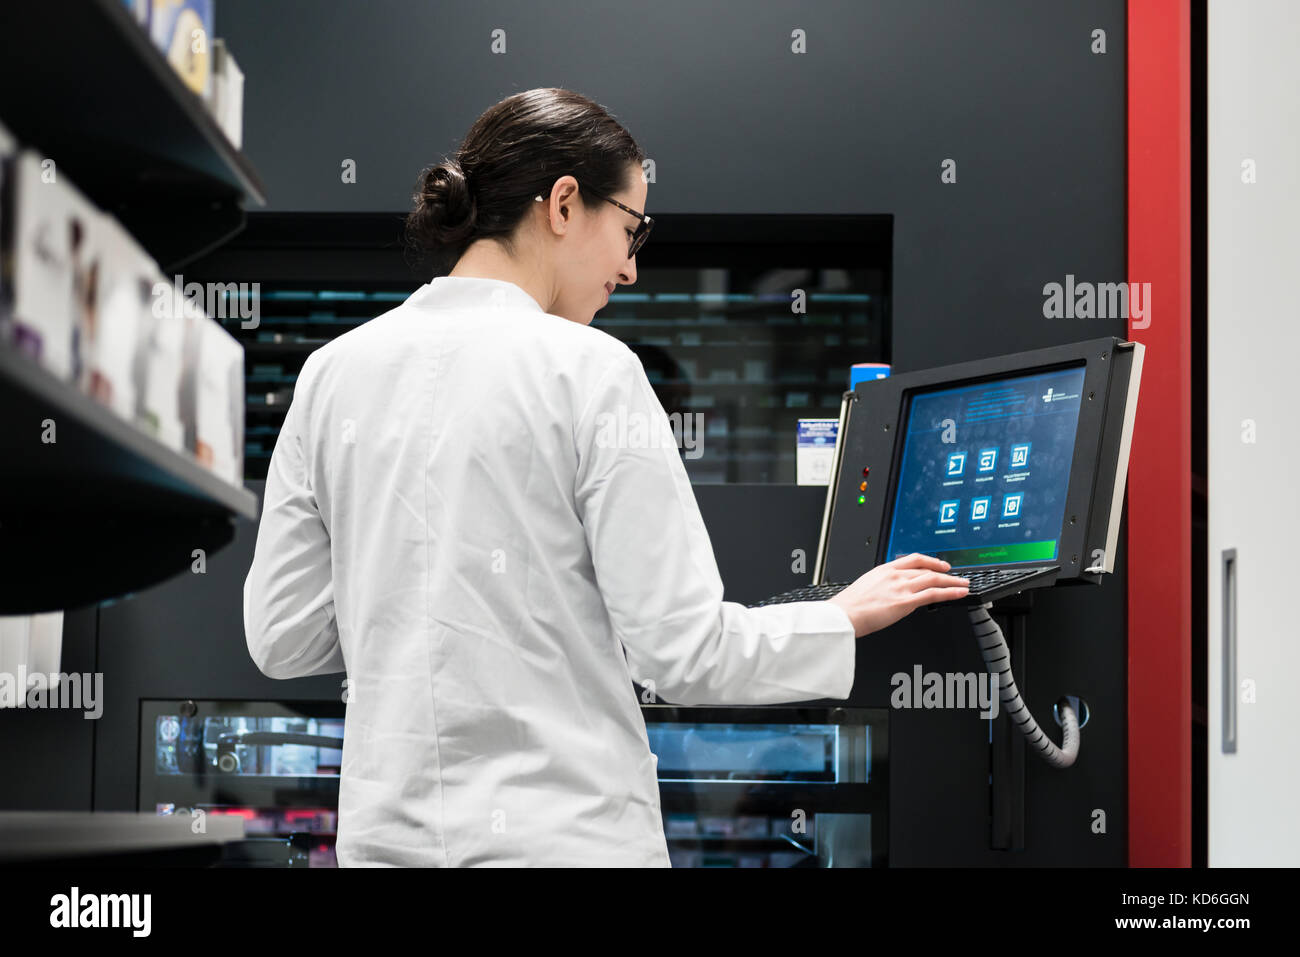 pharmacist using a computer while managing the drug stock in pha - Stock Image